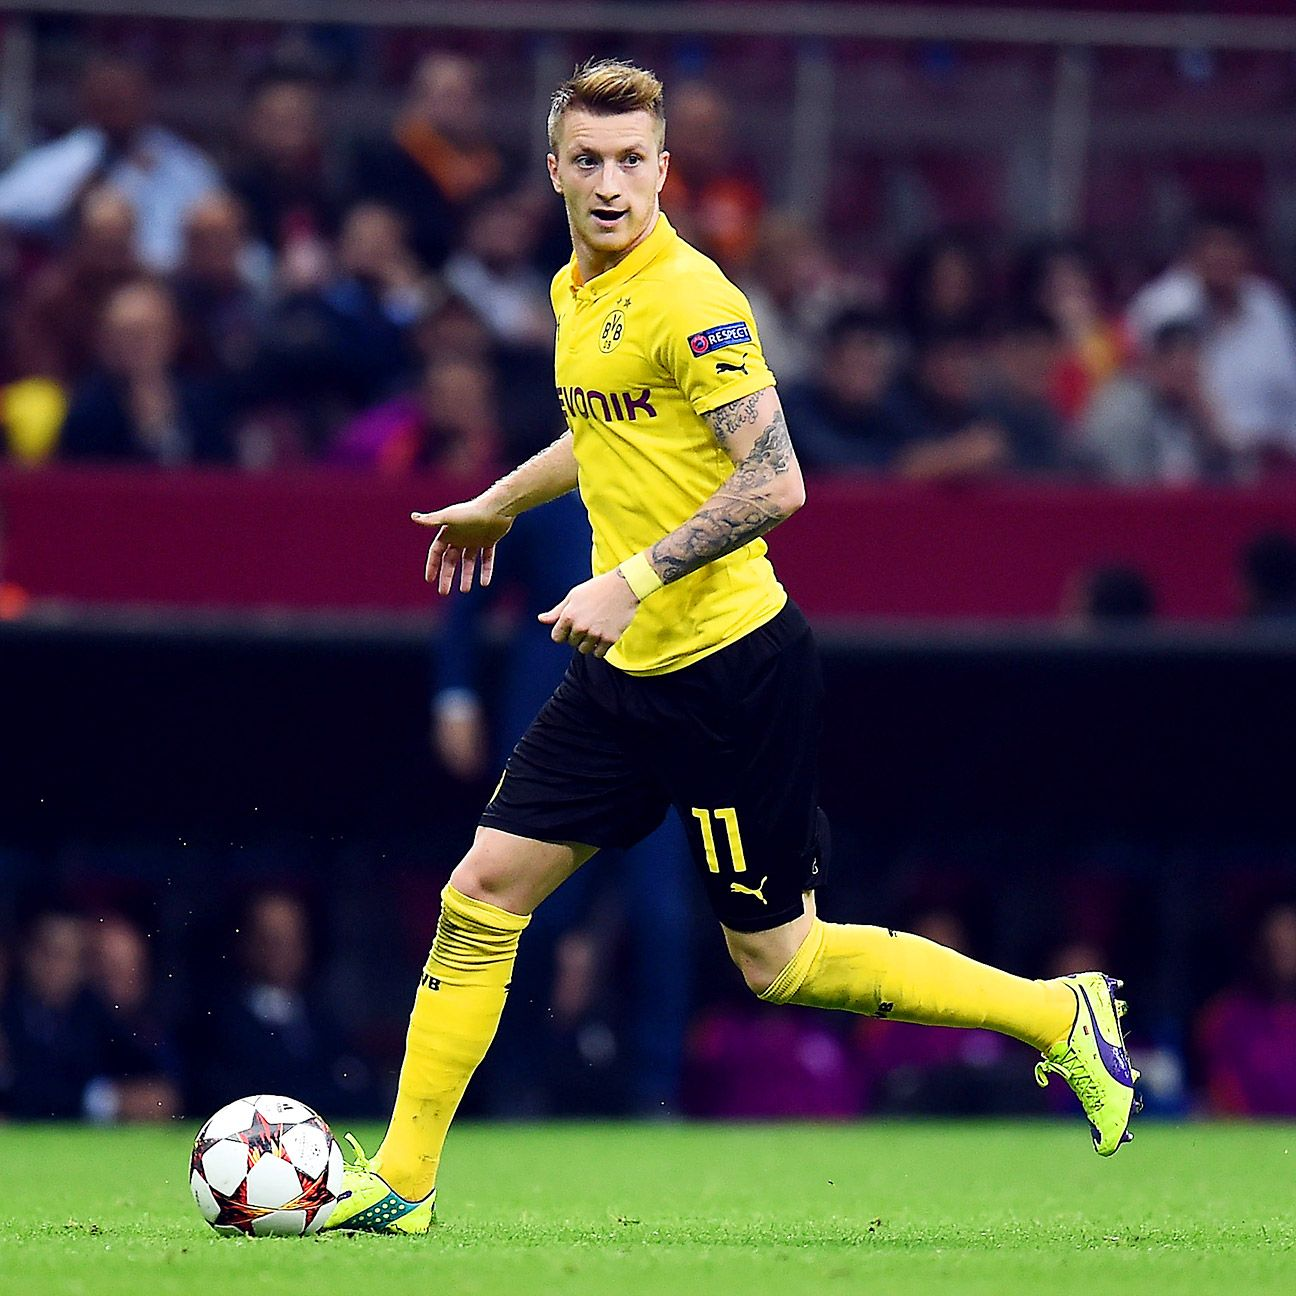 Marco Reus was at his very best for Dortmund in their midweek thumping of Galatasaray.